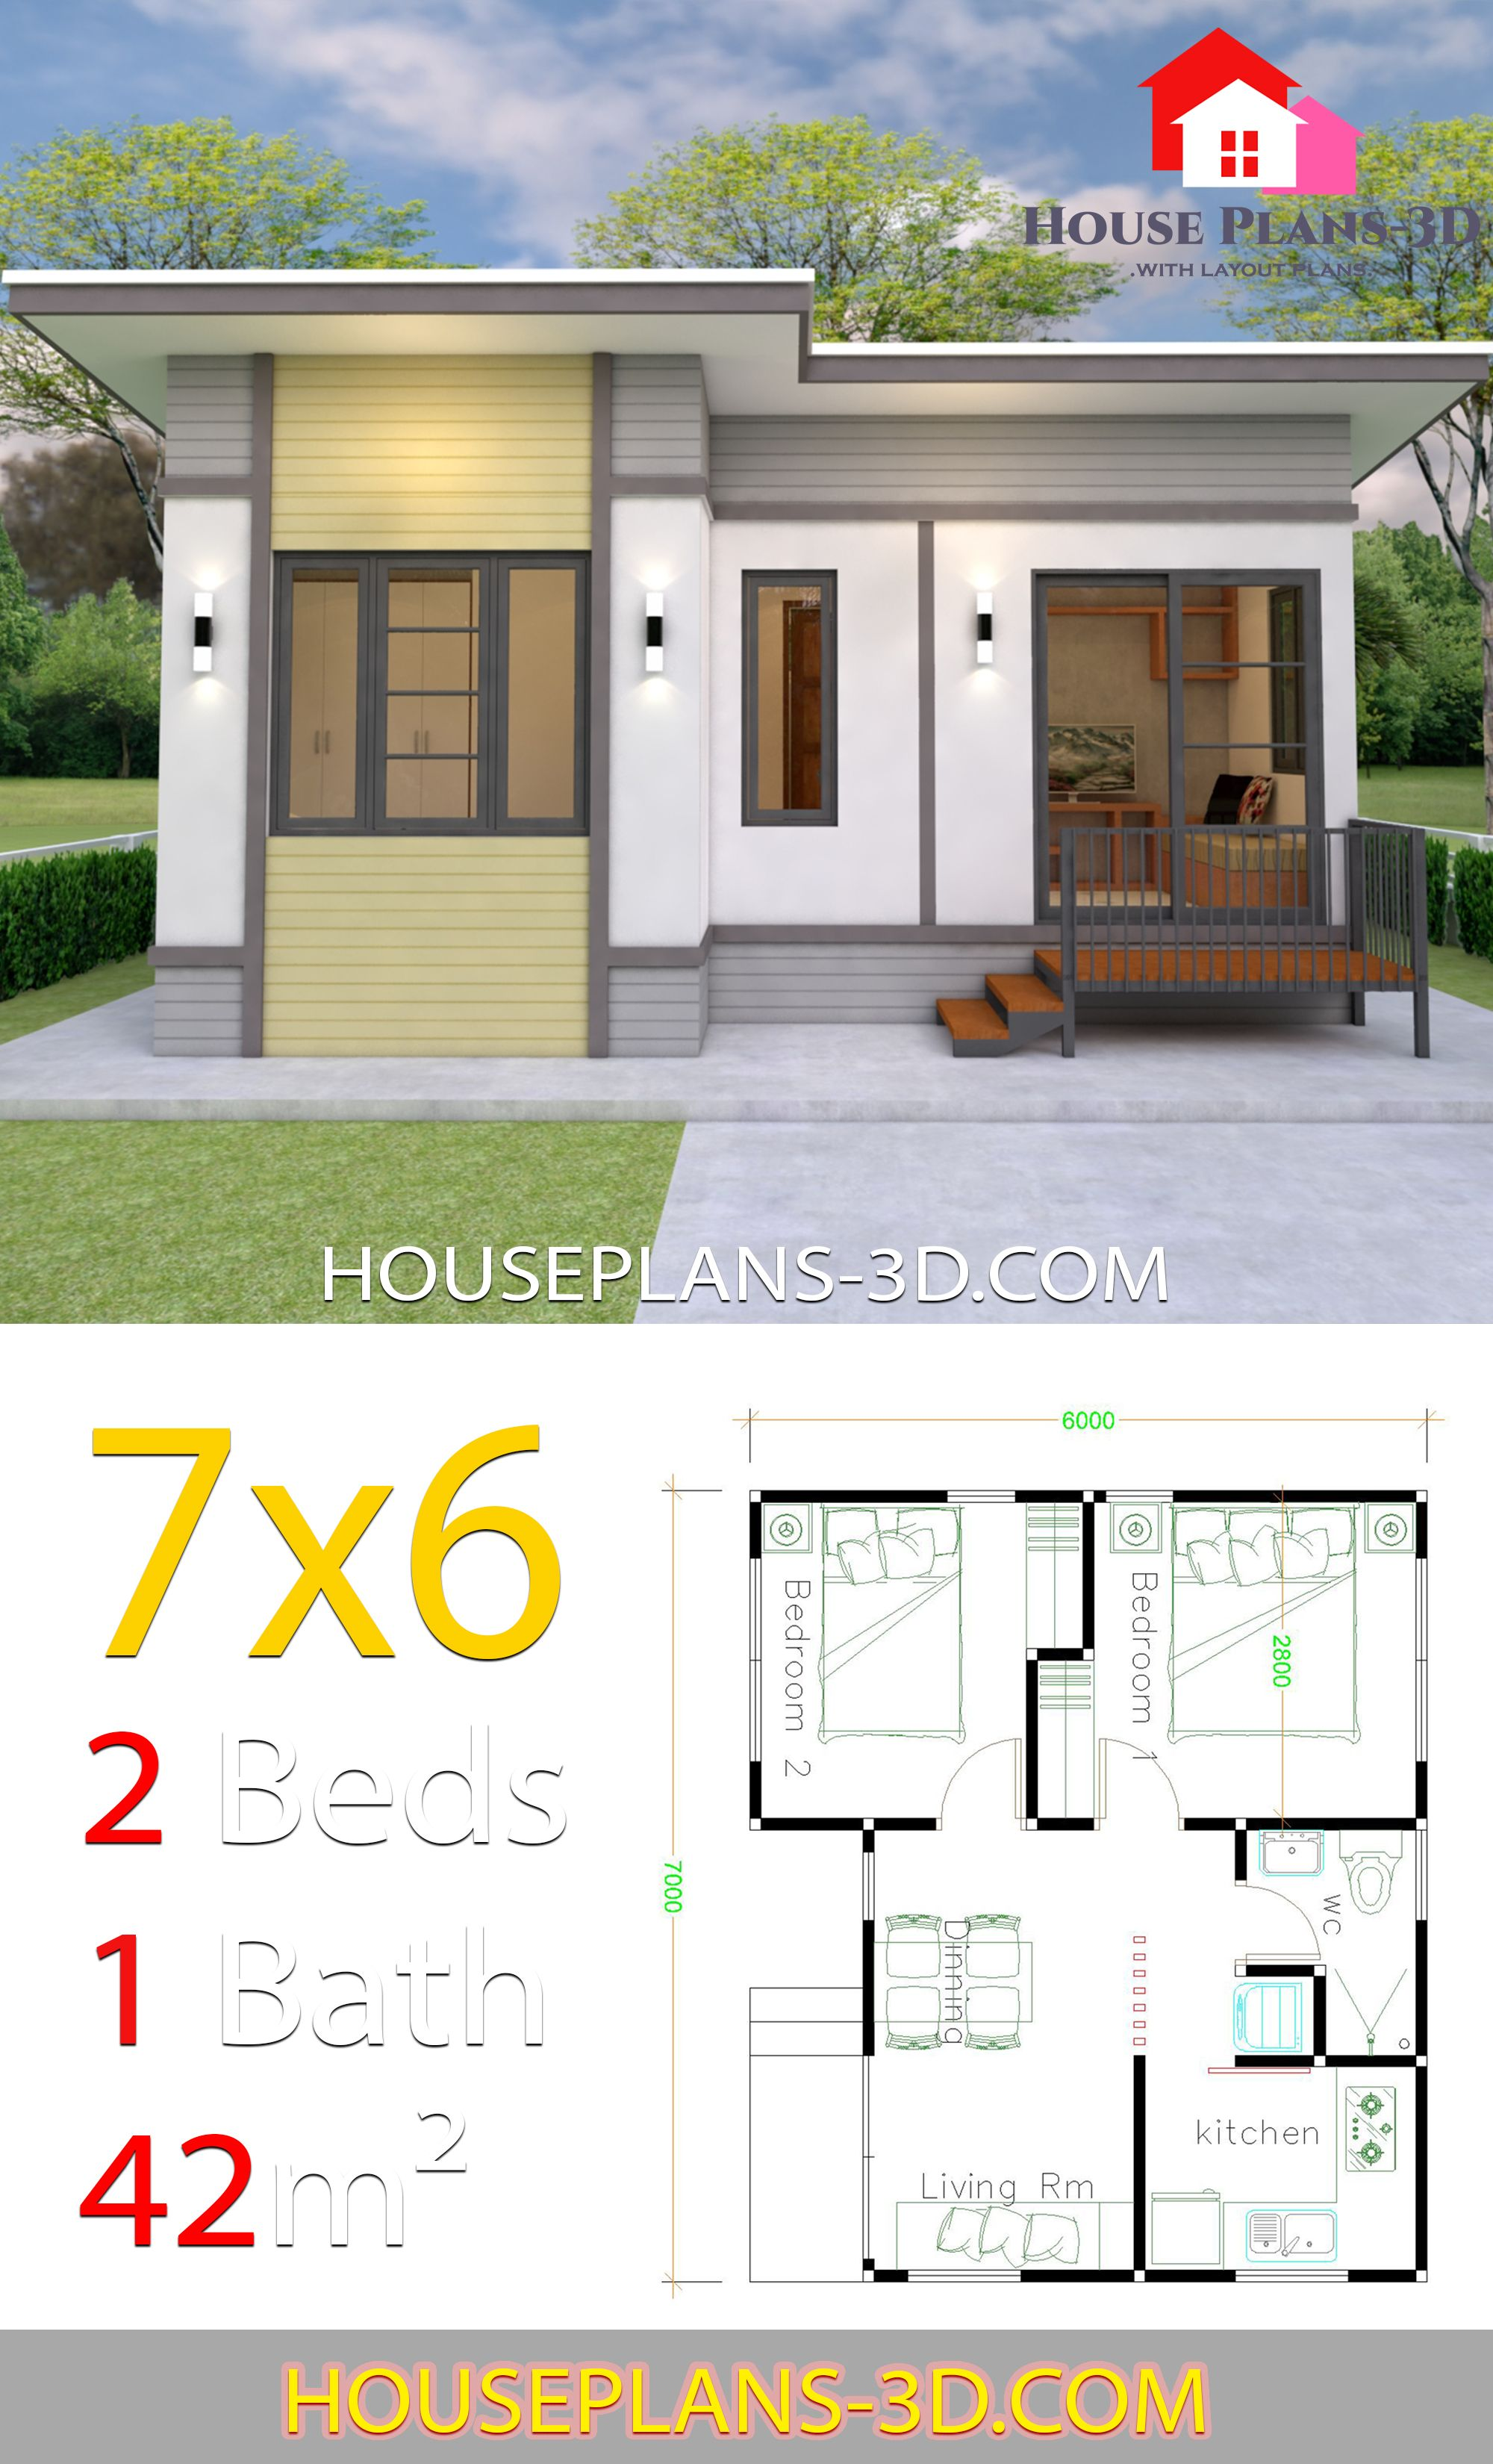 Small House Plans 7x6 With 2 Bedrooms House Plans 3d In 2020 Flat Roof House House Plans Simple House Plans